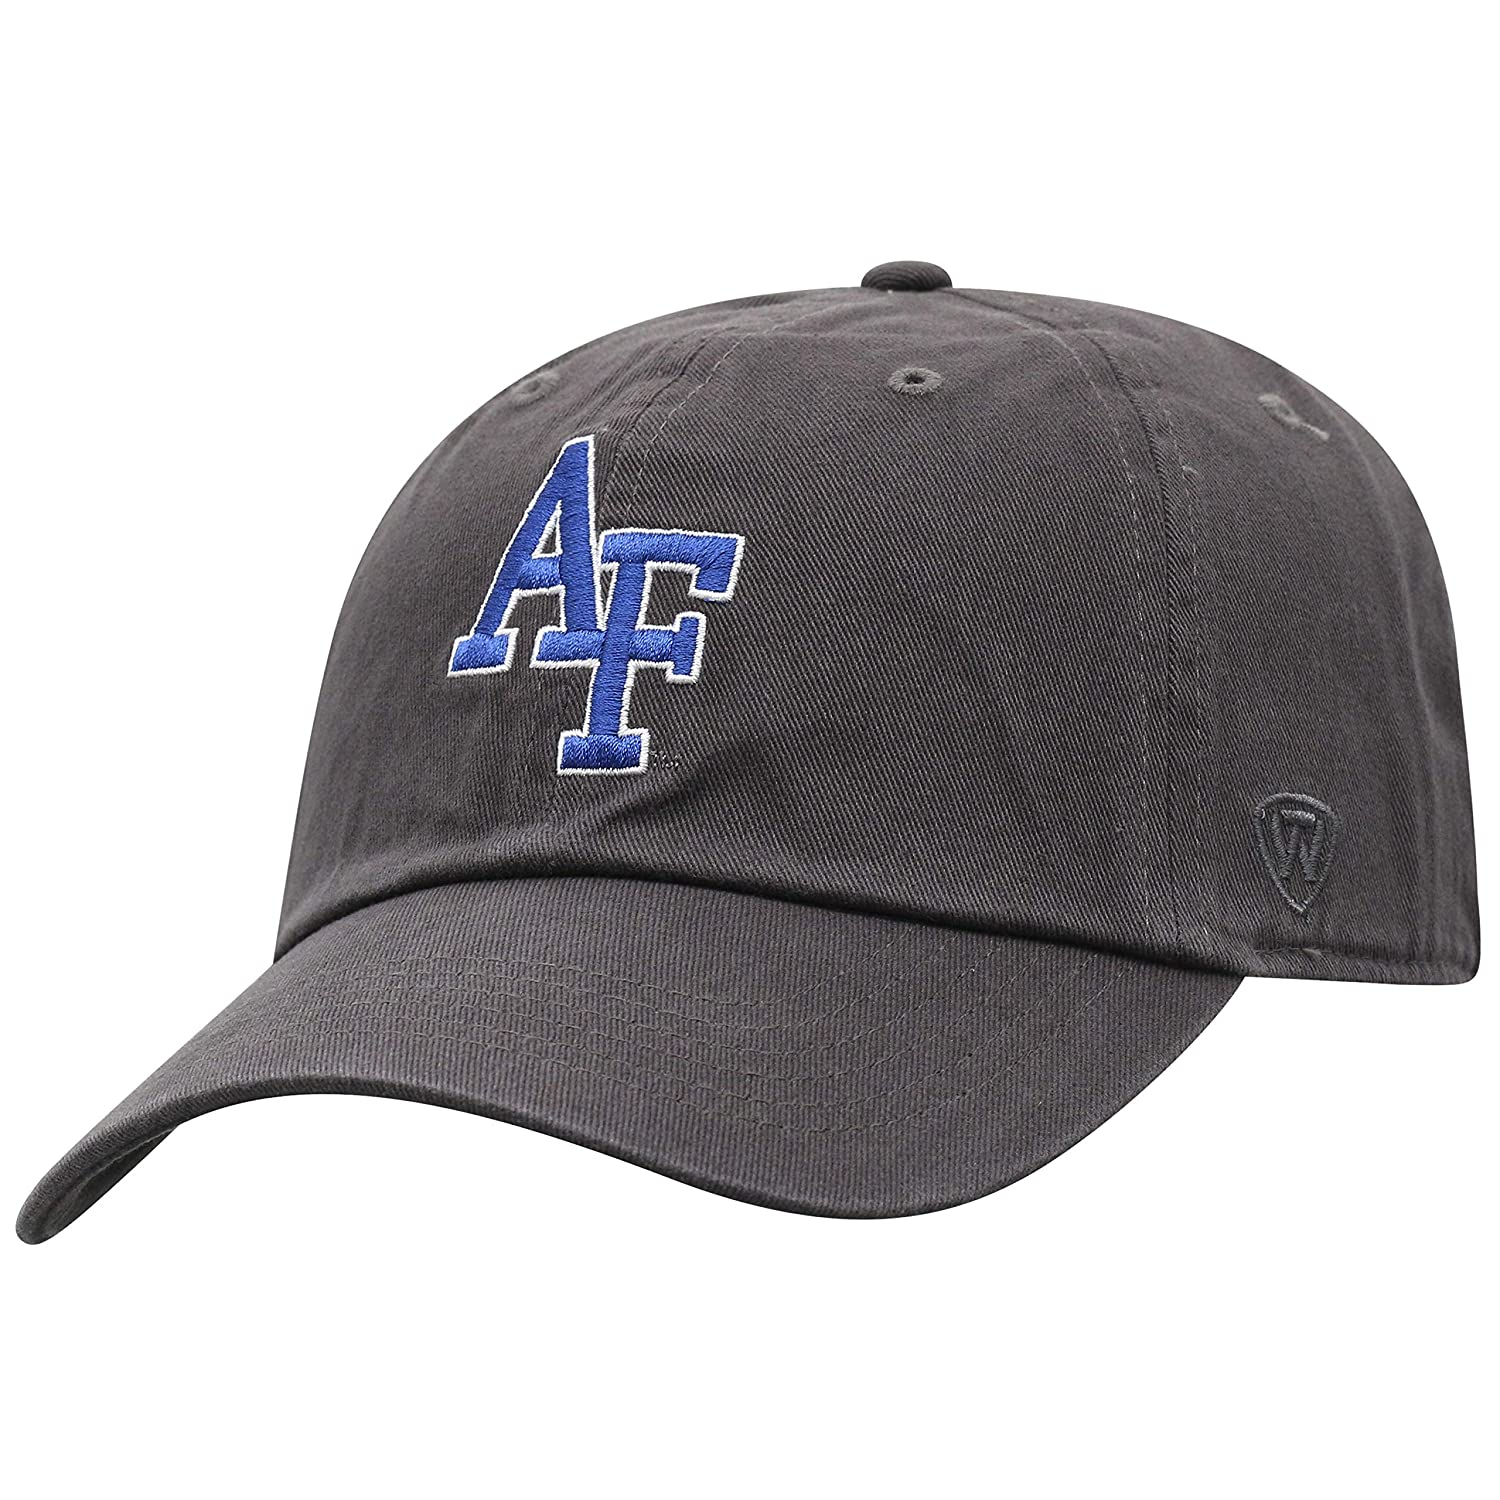 promo code f086a 2d4f2 Amazon.com   Top of the World Air Force Falcons Men s Hat Icon, Charcoal,  Adjustable   Clothing